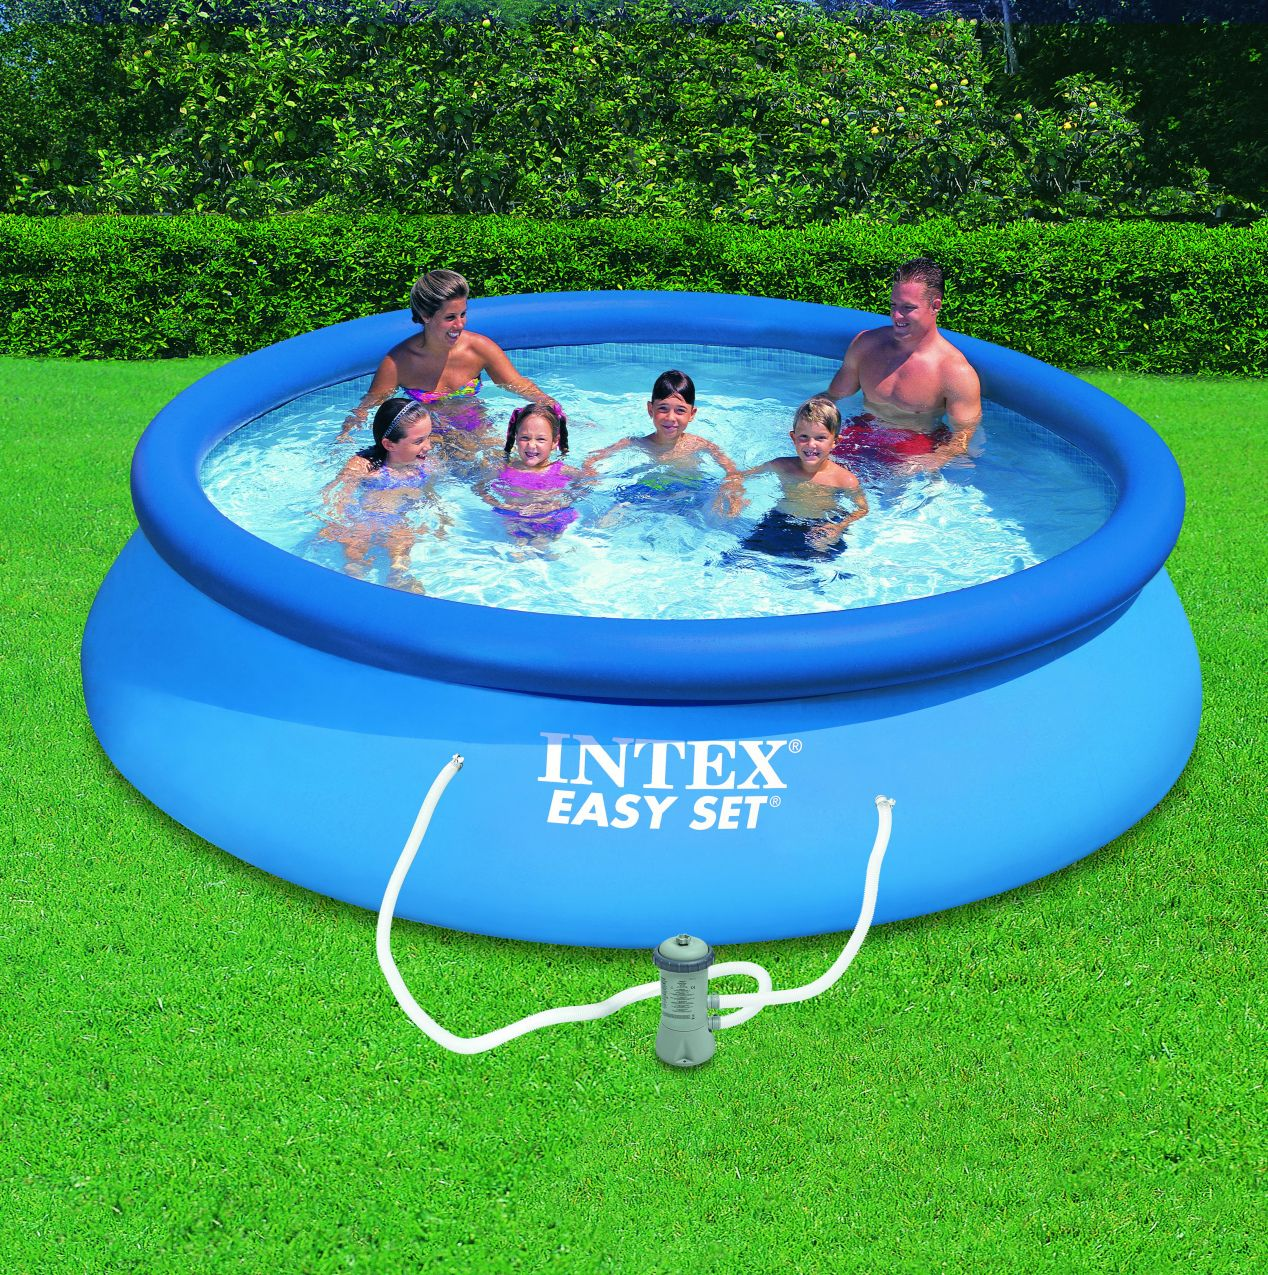 28 Liner Piscine Hors Sol 4m60 2018 Easy Set Pools Cheap Above Ground Pool Intex